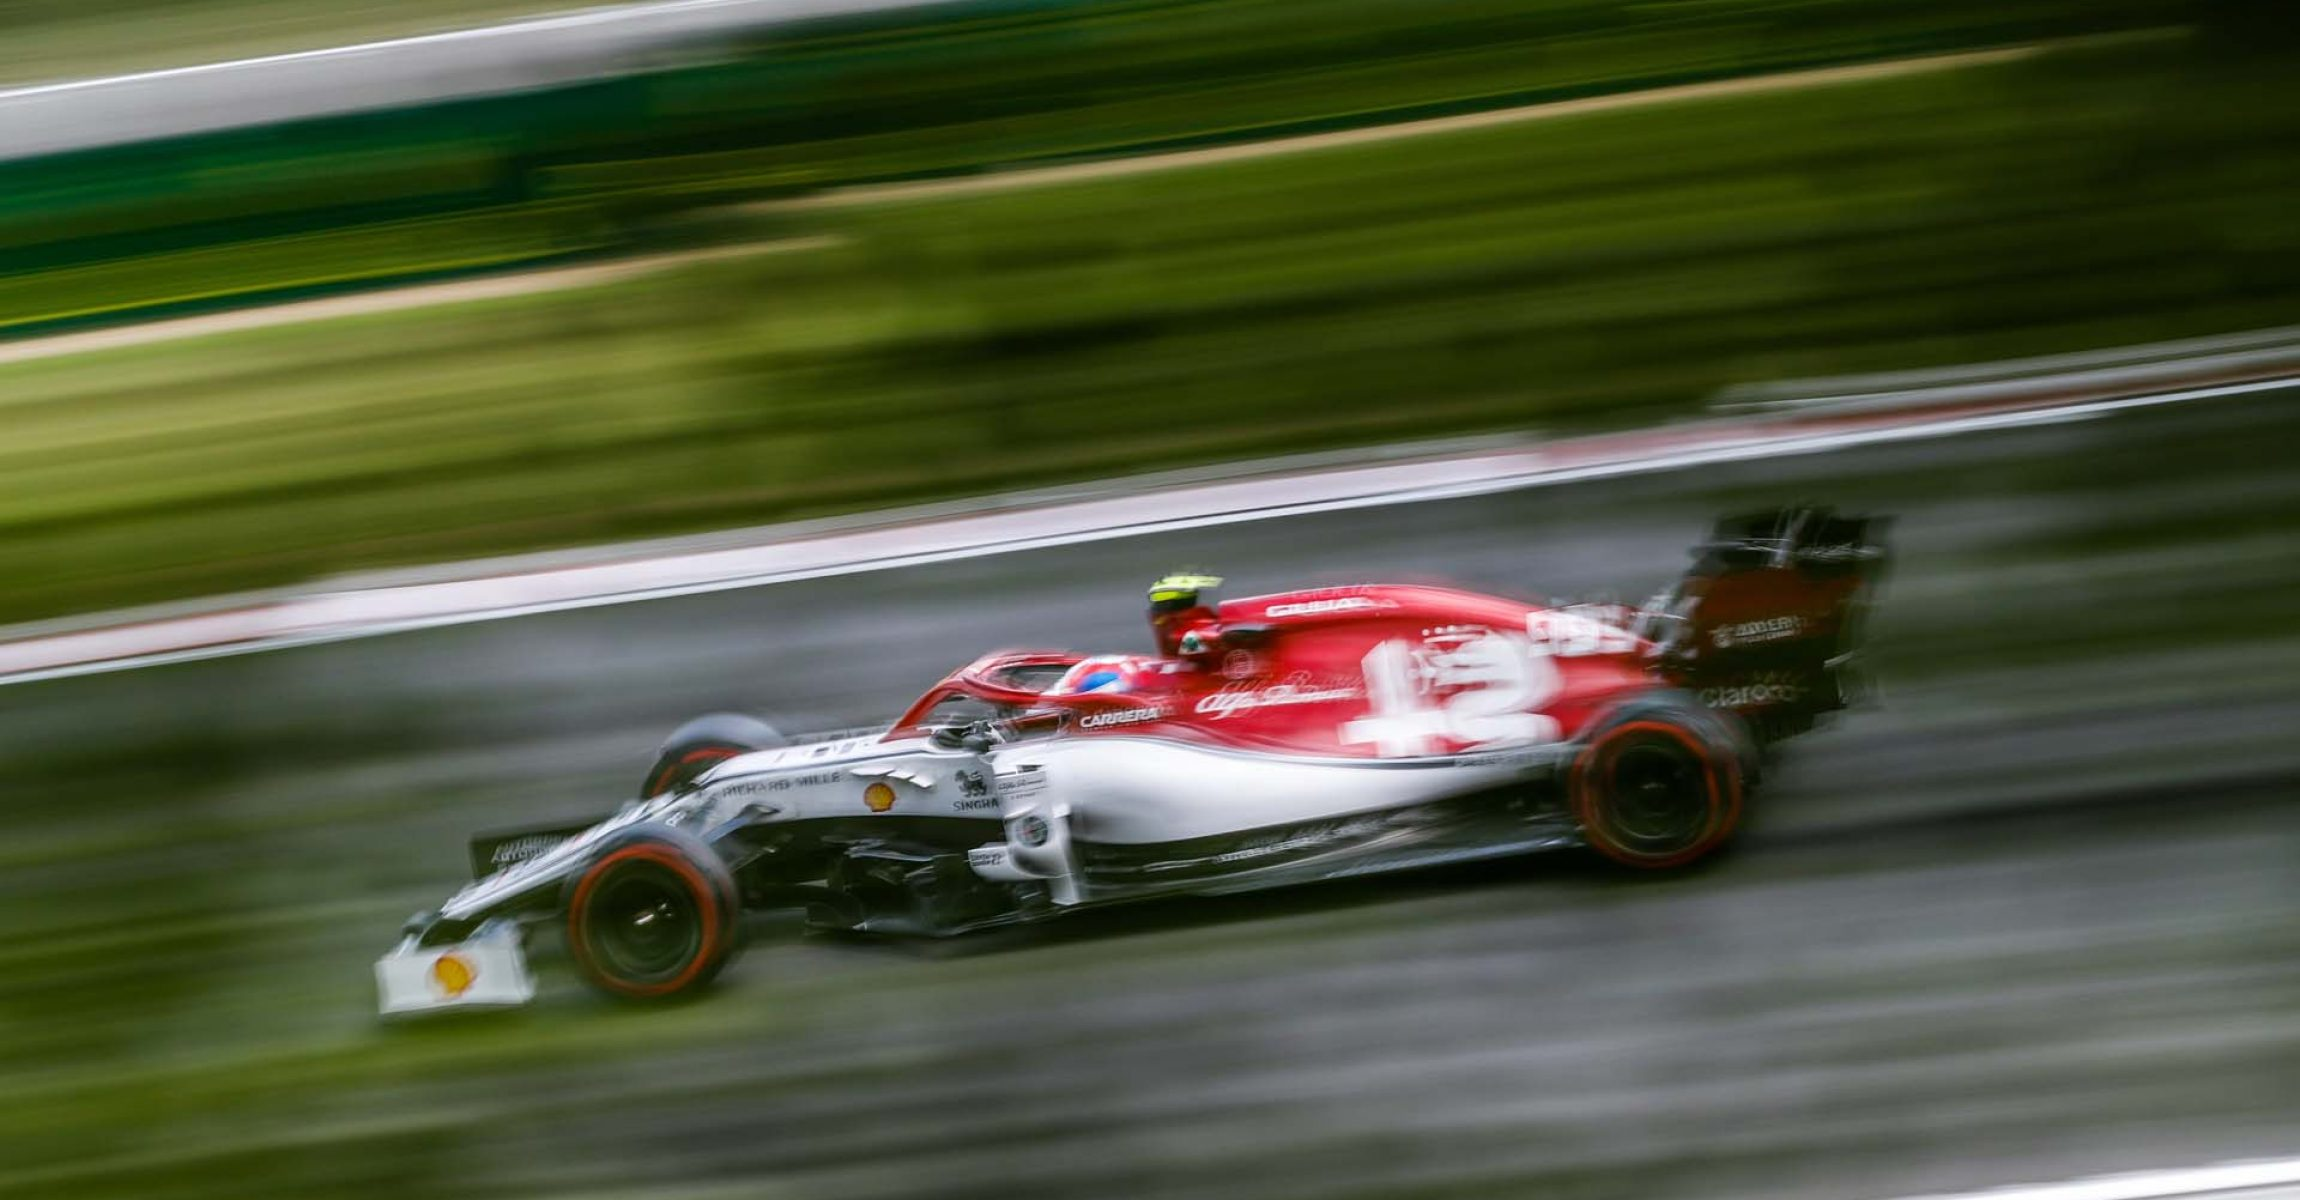 99 GIOVINAZZI Antonio (ita), Alfa Romeo Racing C38, action during the 2019 Formula One World Championship, Grand Prix of Hungary from august 1 to 4, Hungaroring, Budapest - Photo Florent Gooden / DPPI